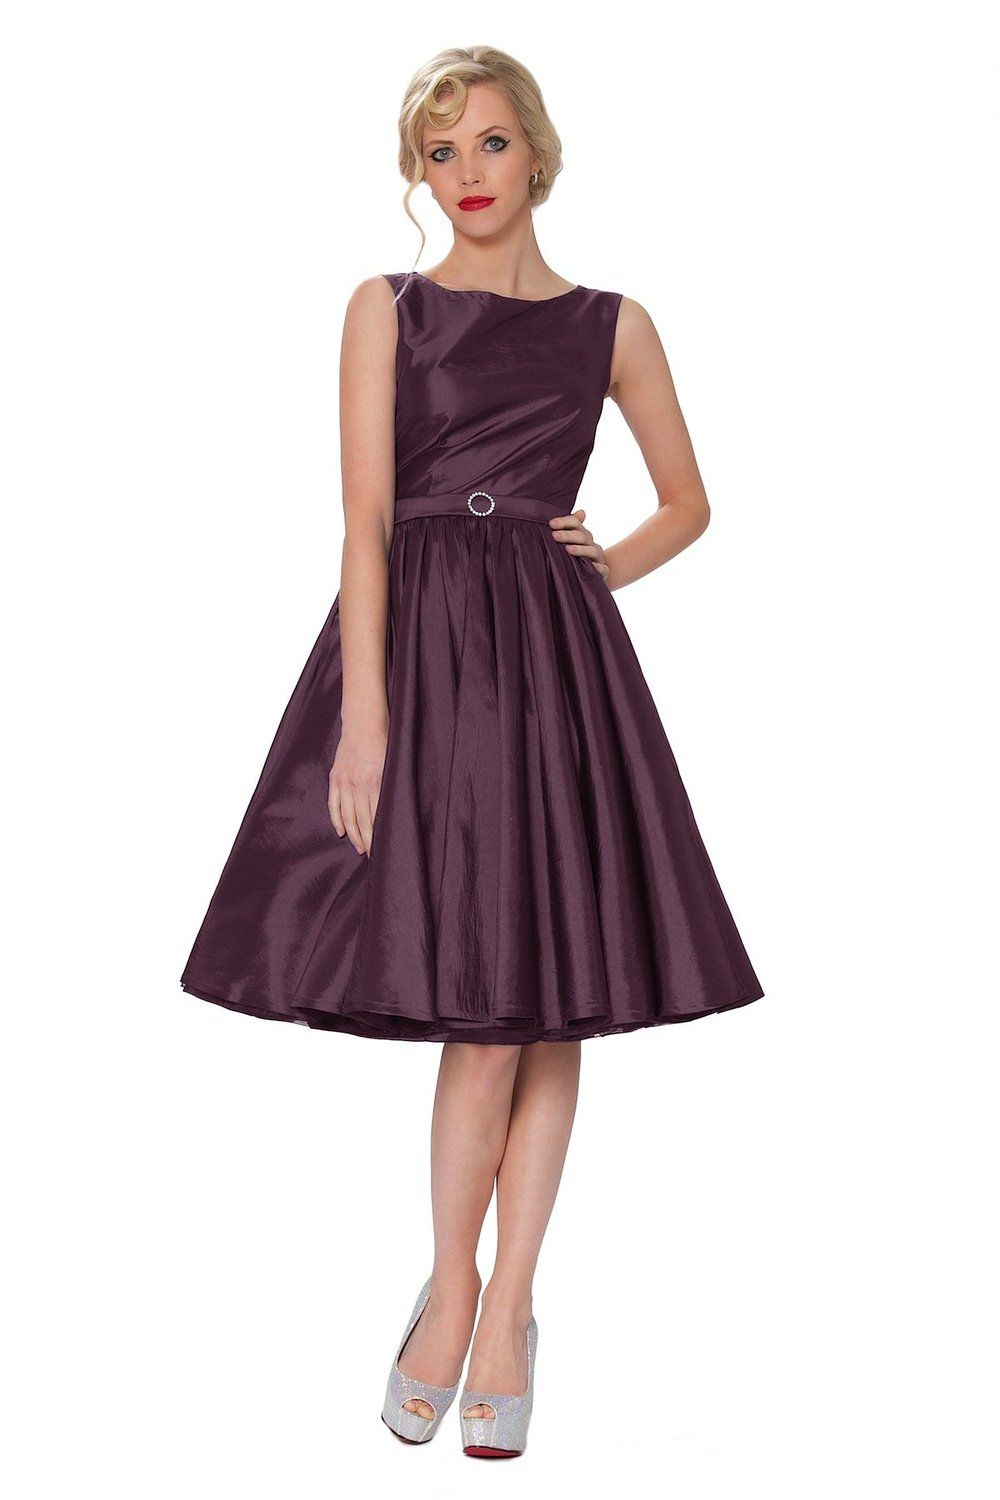 Sexyher audrey hepburn style 1950s rockabilly swing dress sexyher audrey hepburn style 1950s rockabilly swing dress rbj1401 at amazon womens clothing store ombrellifo Image collections